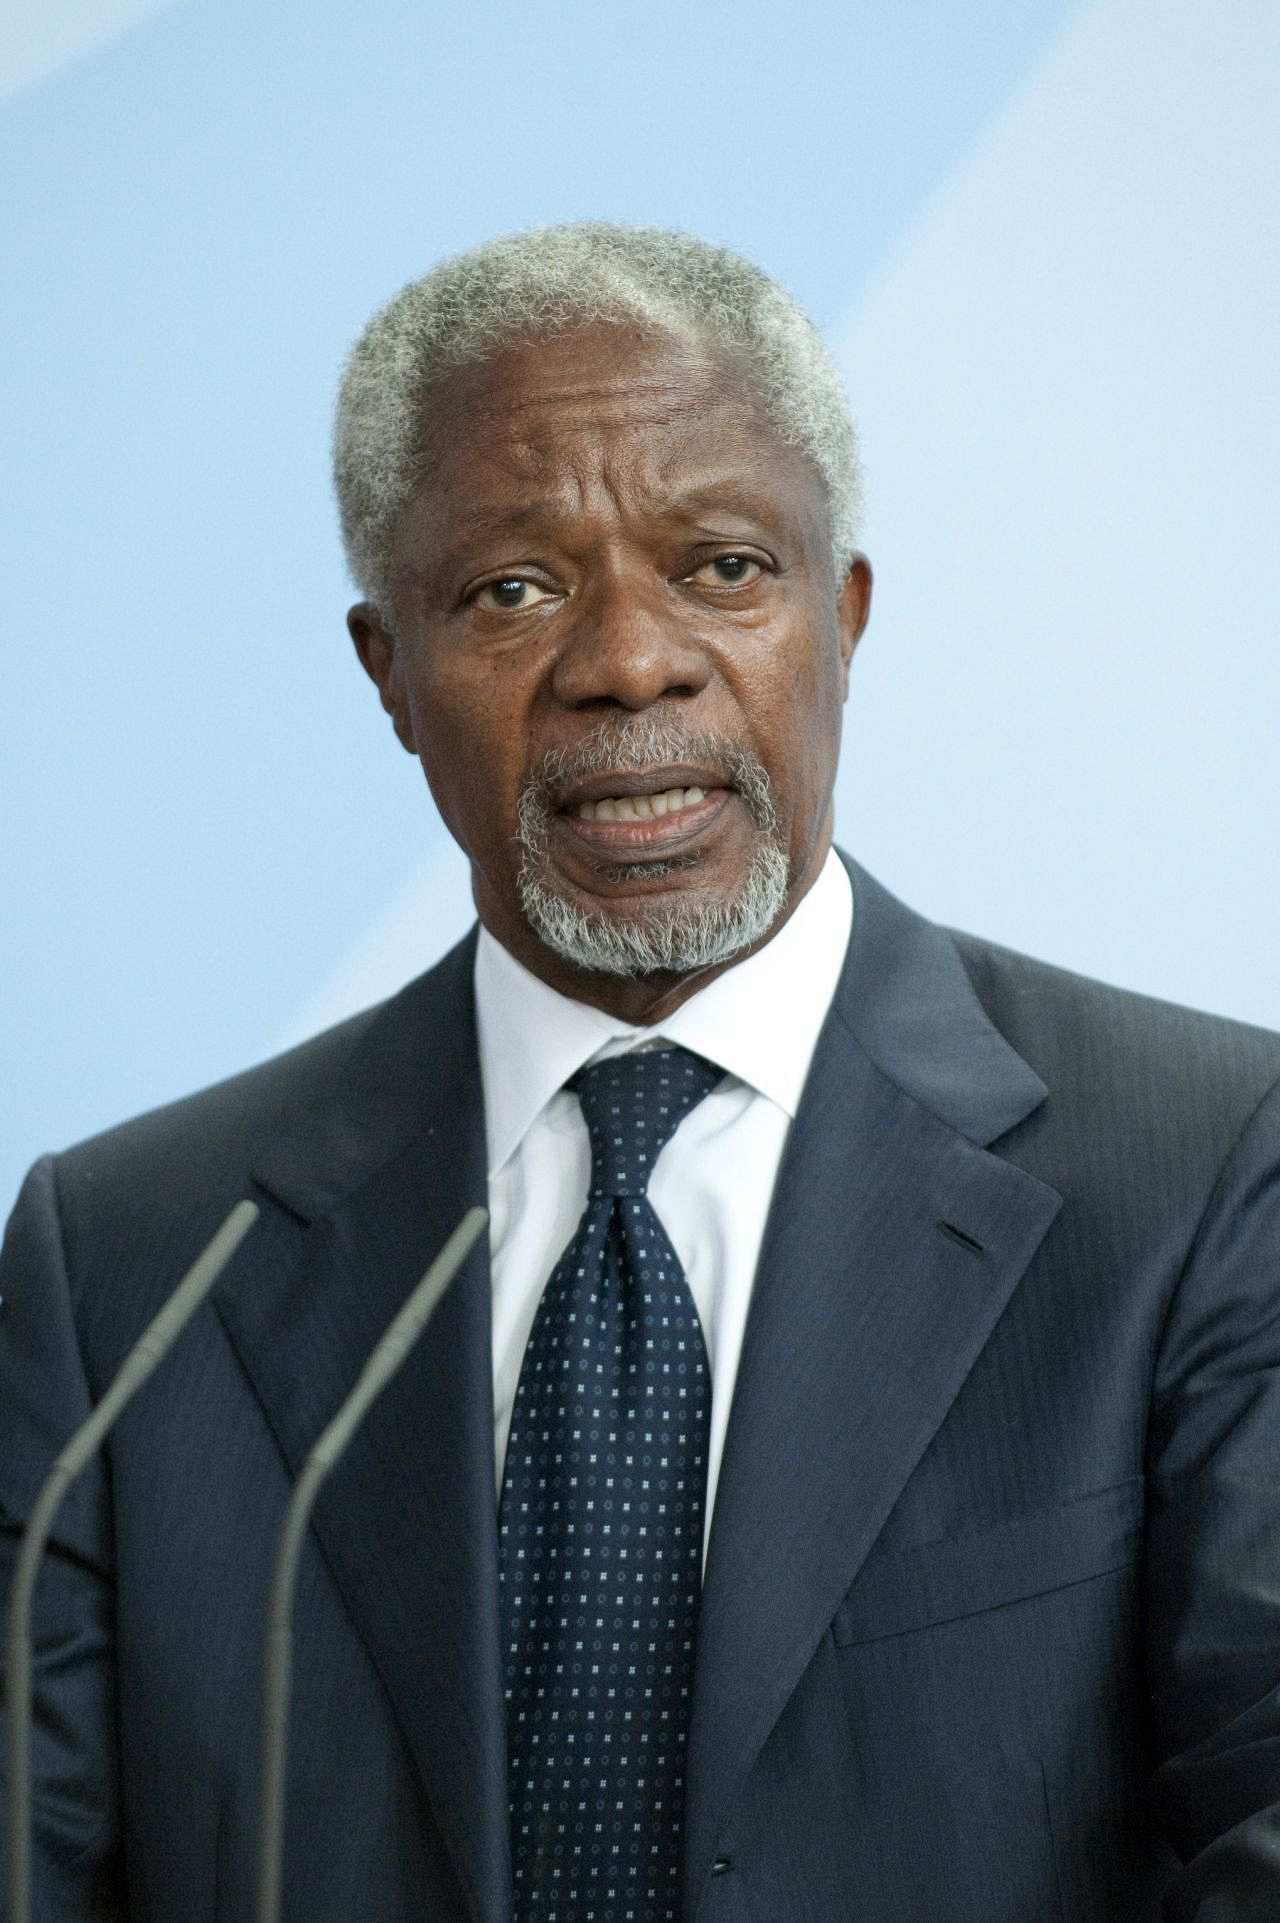 Porträtfoto Kofi Annan, 10. September 2010, Berlin.